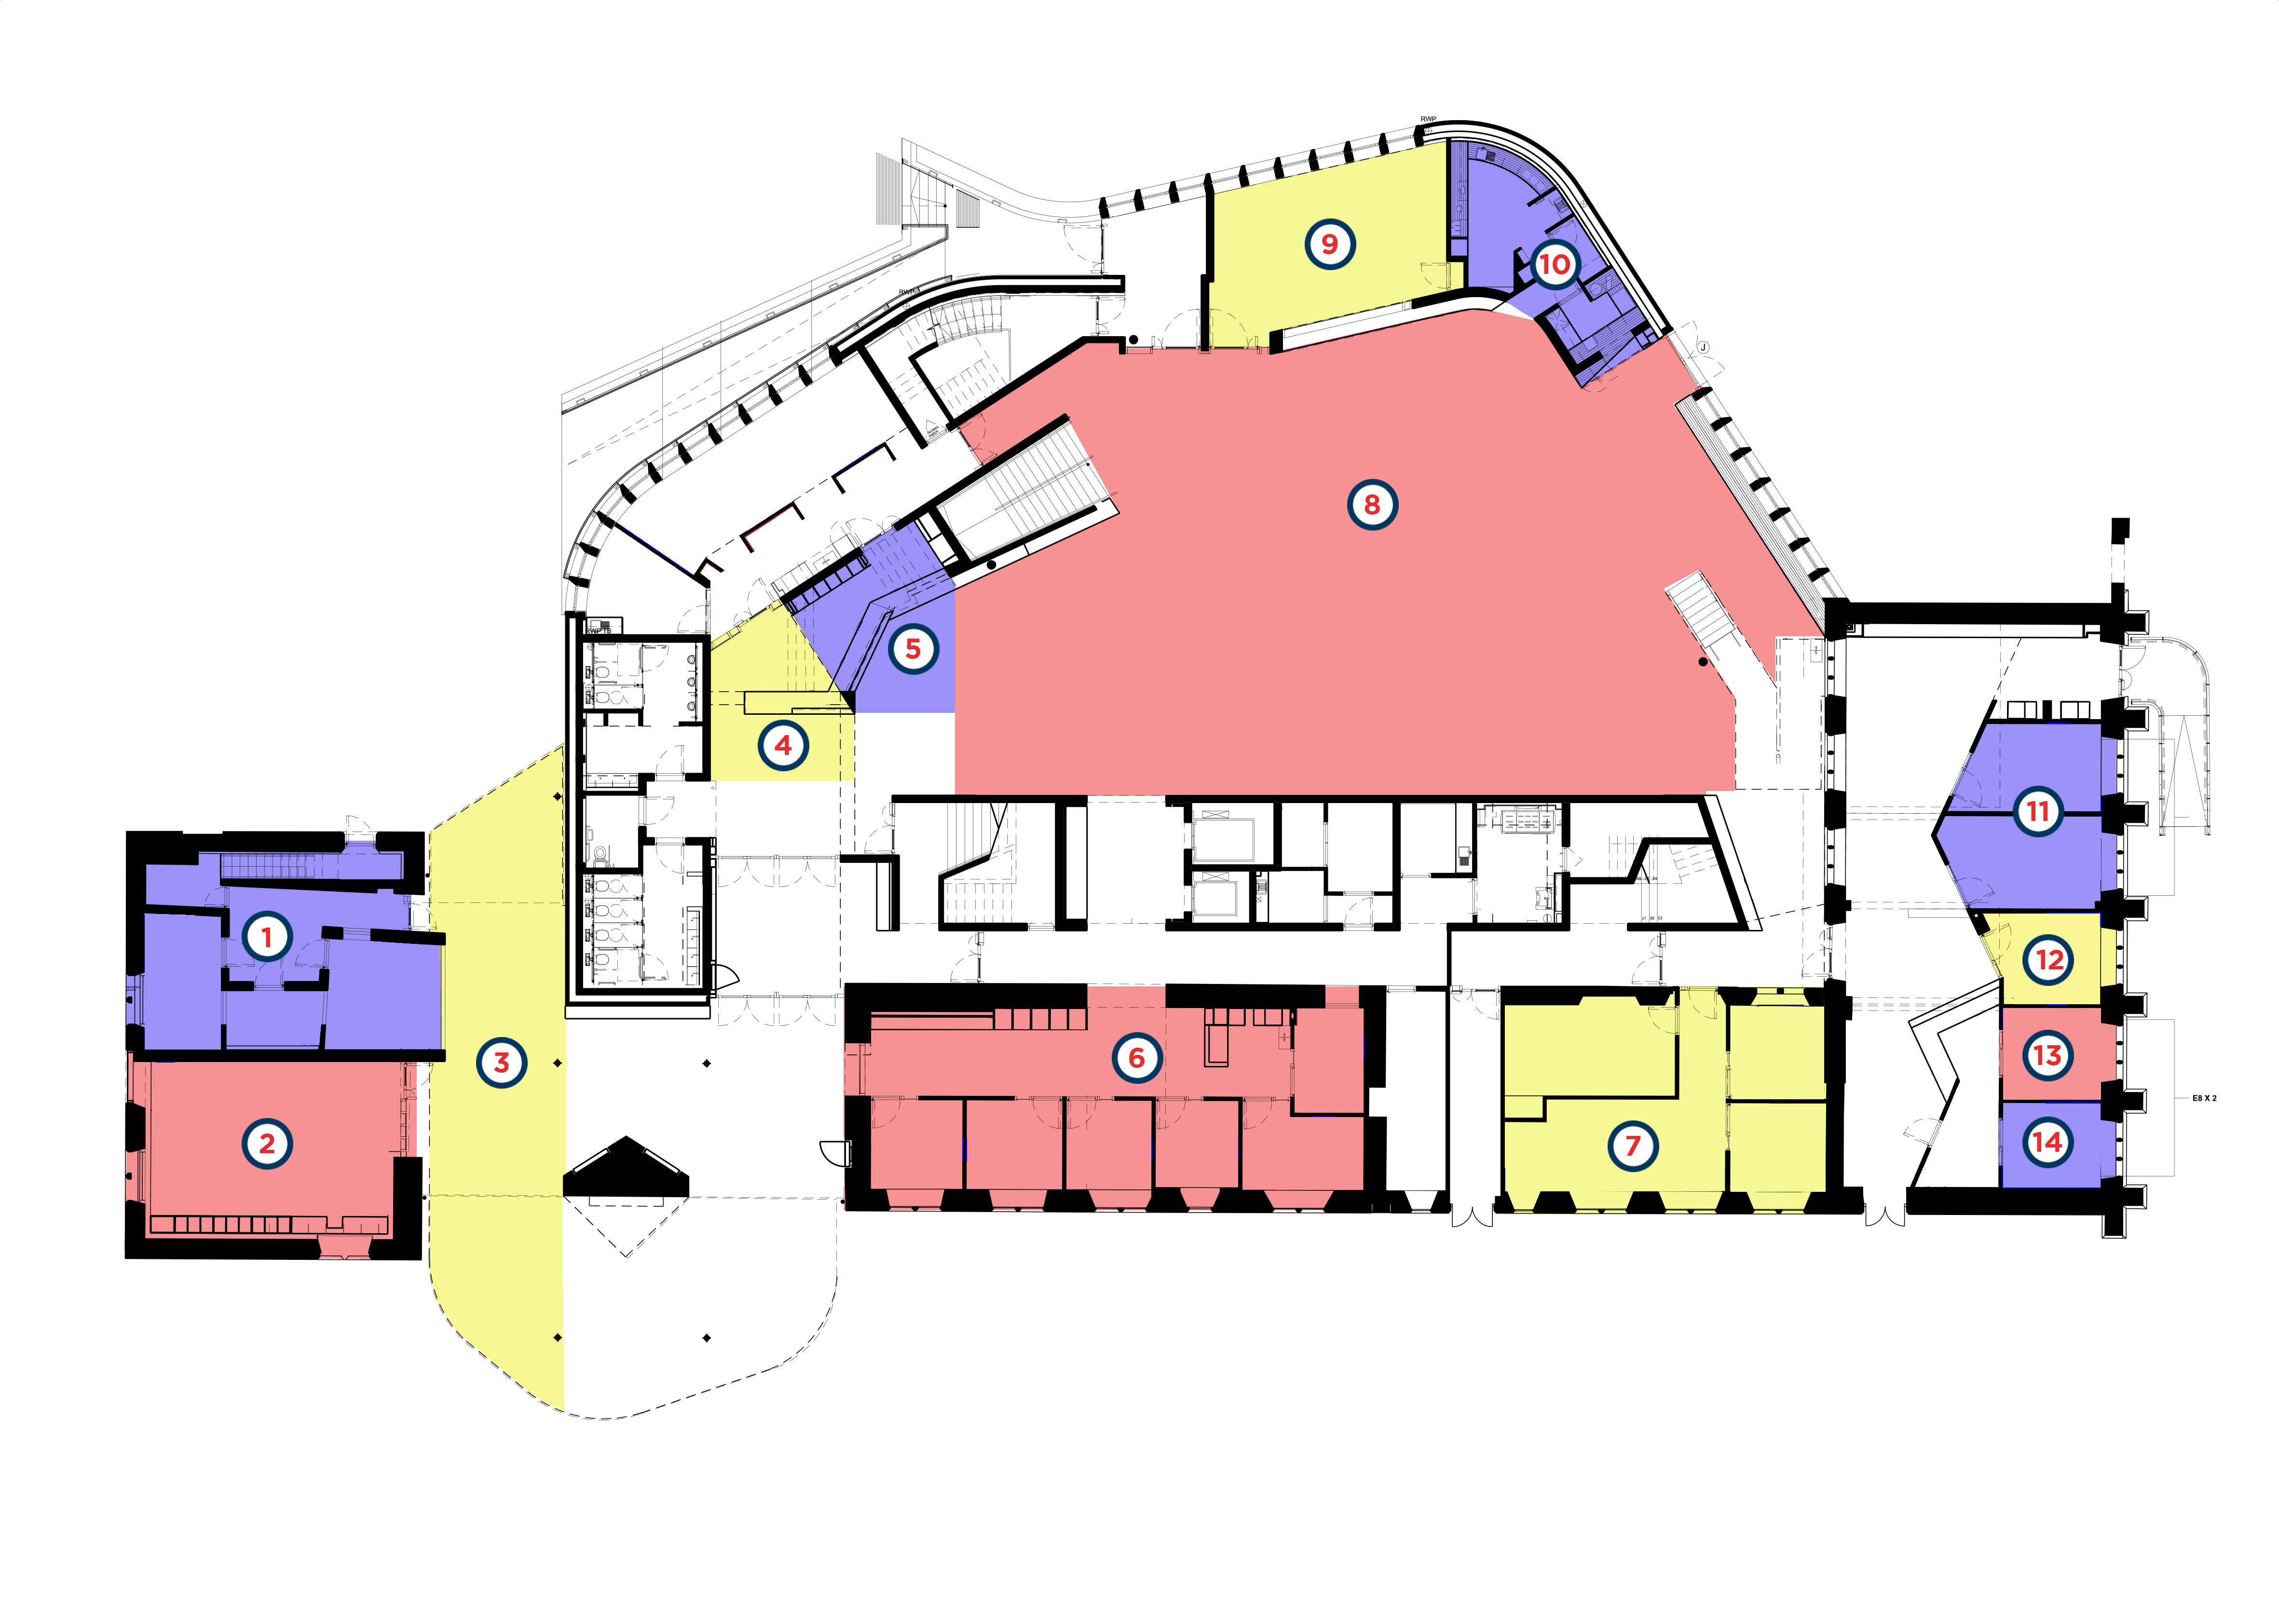 Ground floor layout plans of the Hub